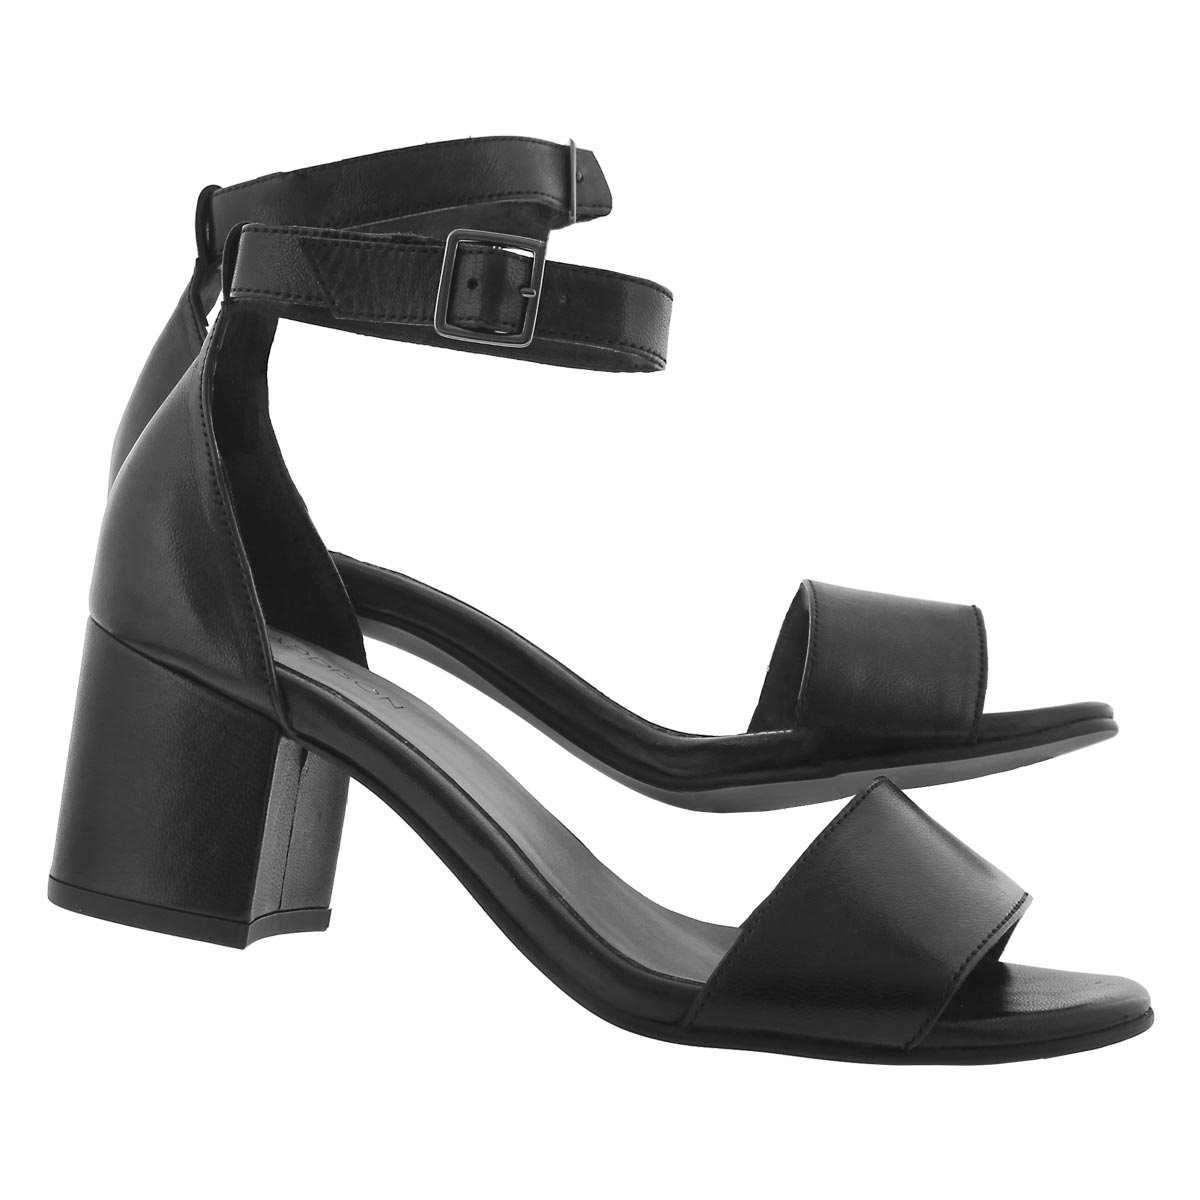 Lds Freda black dress sandal